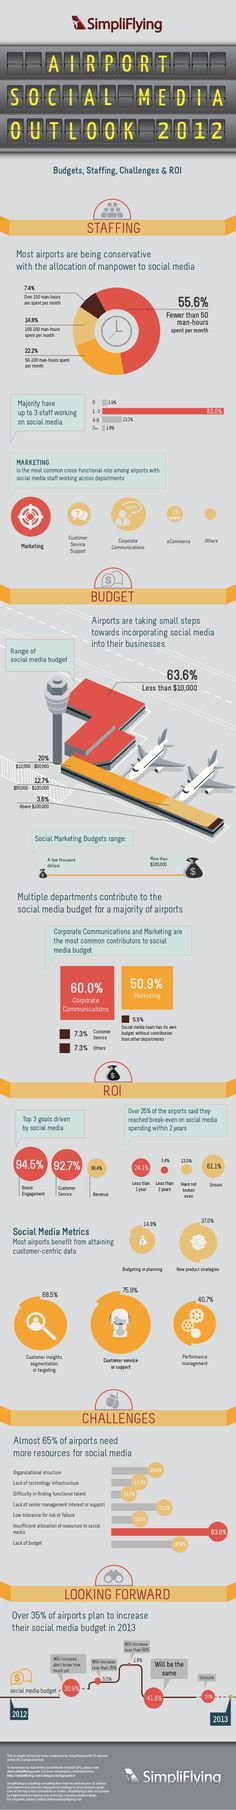 Airport Social Media outlook 2012 #infographic